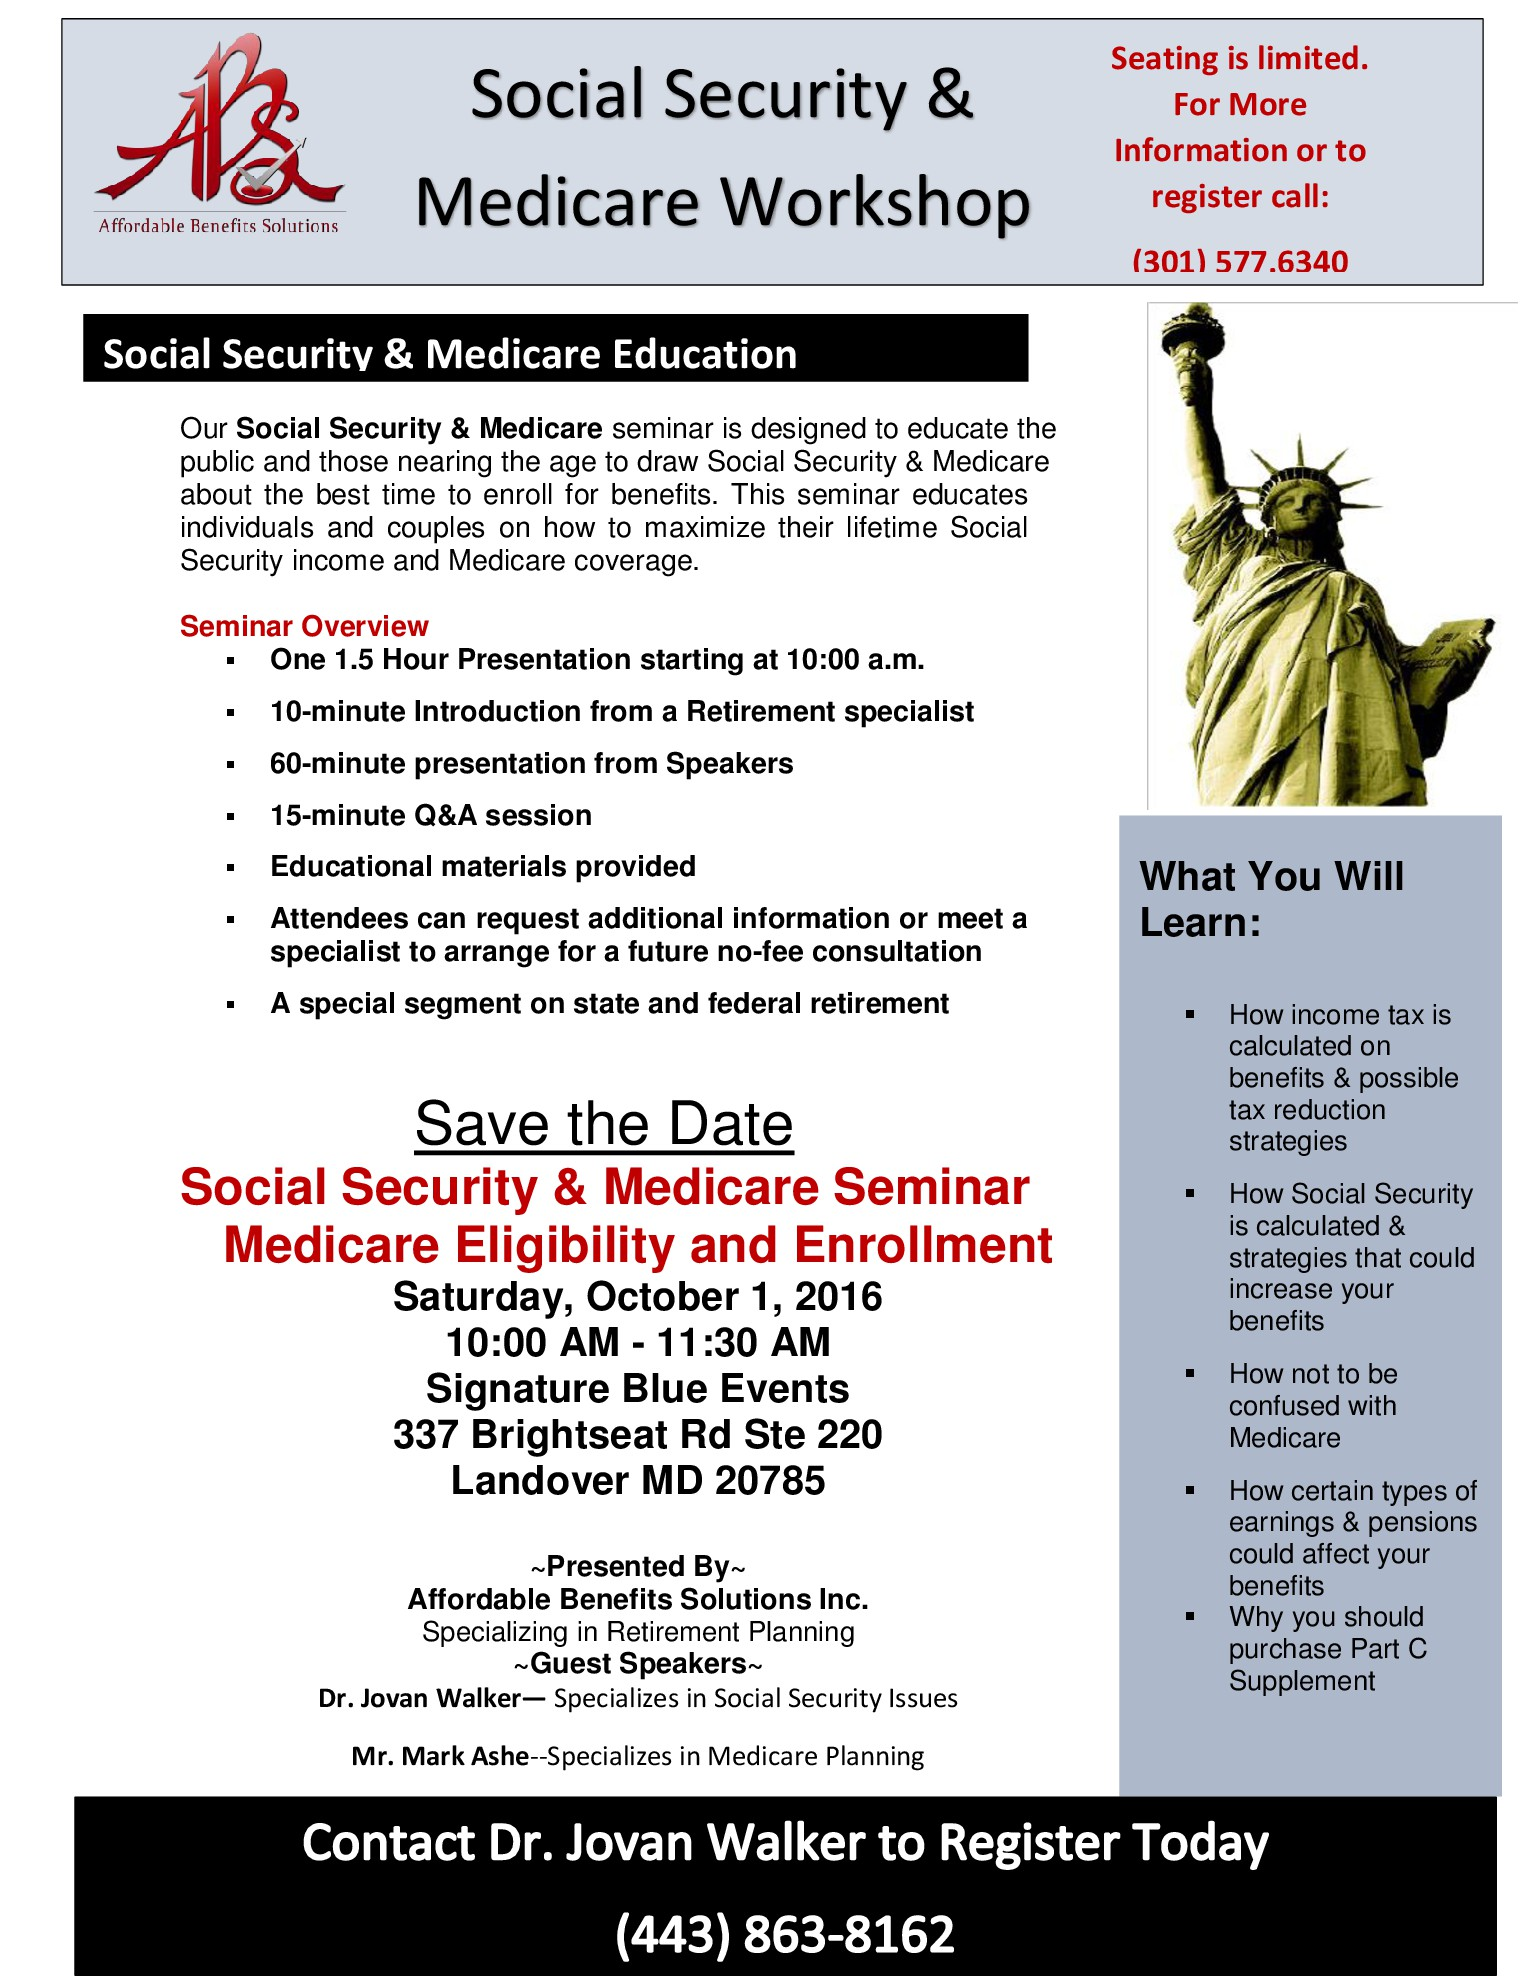 Social Security & Medicare Workshop Oct 1 2016